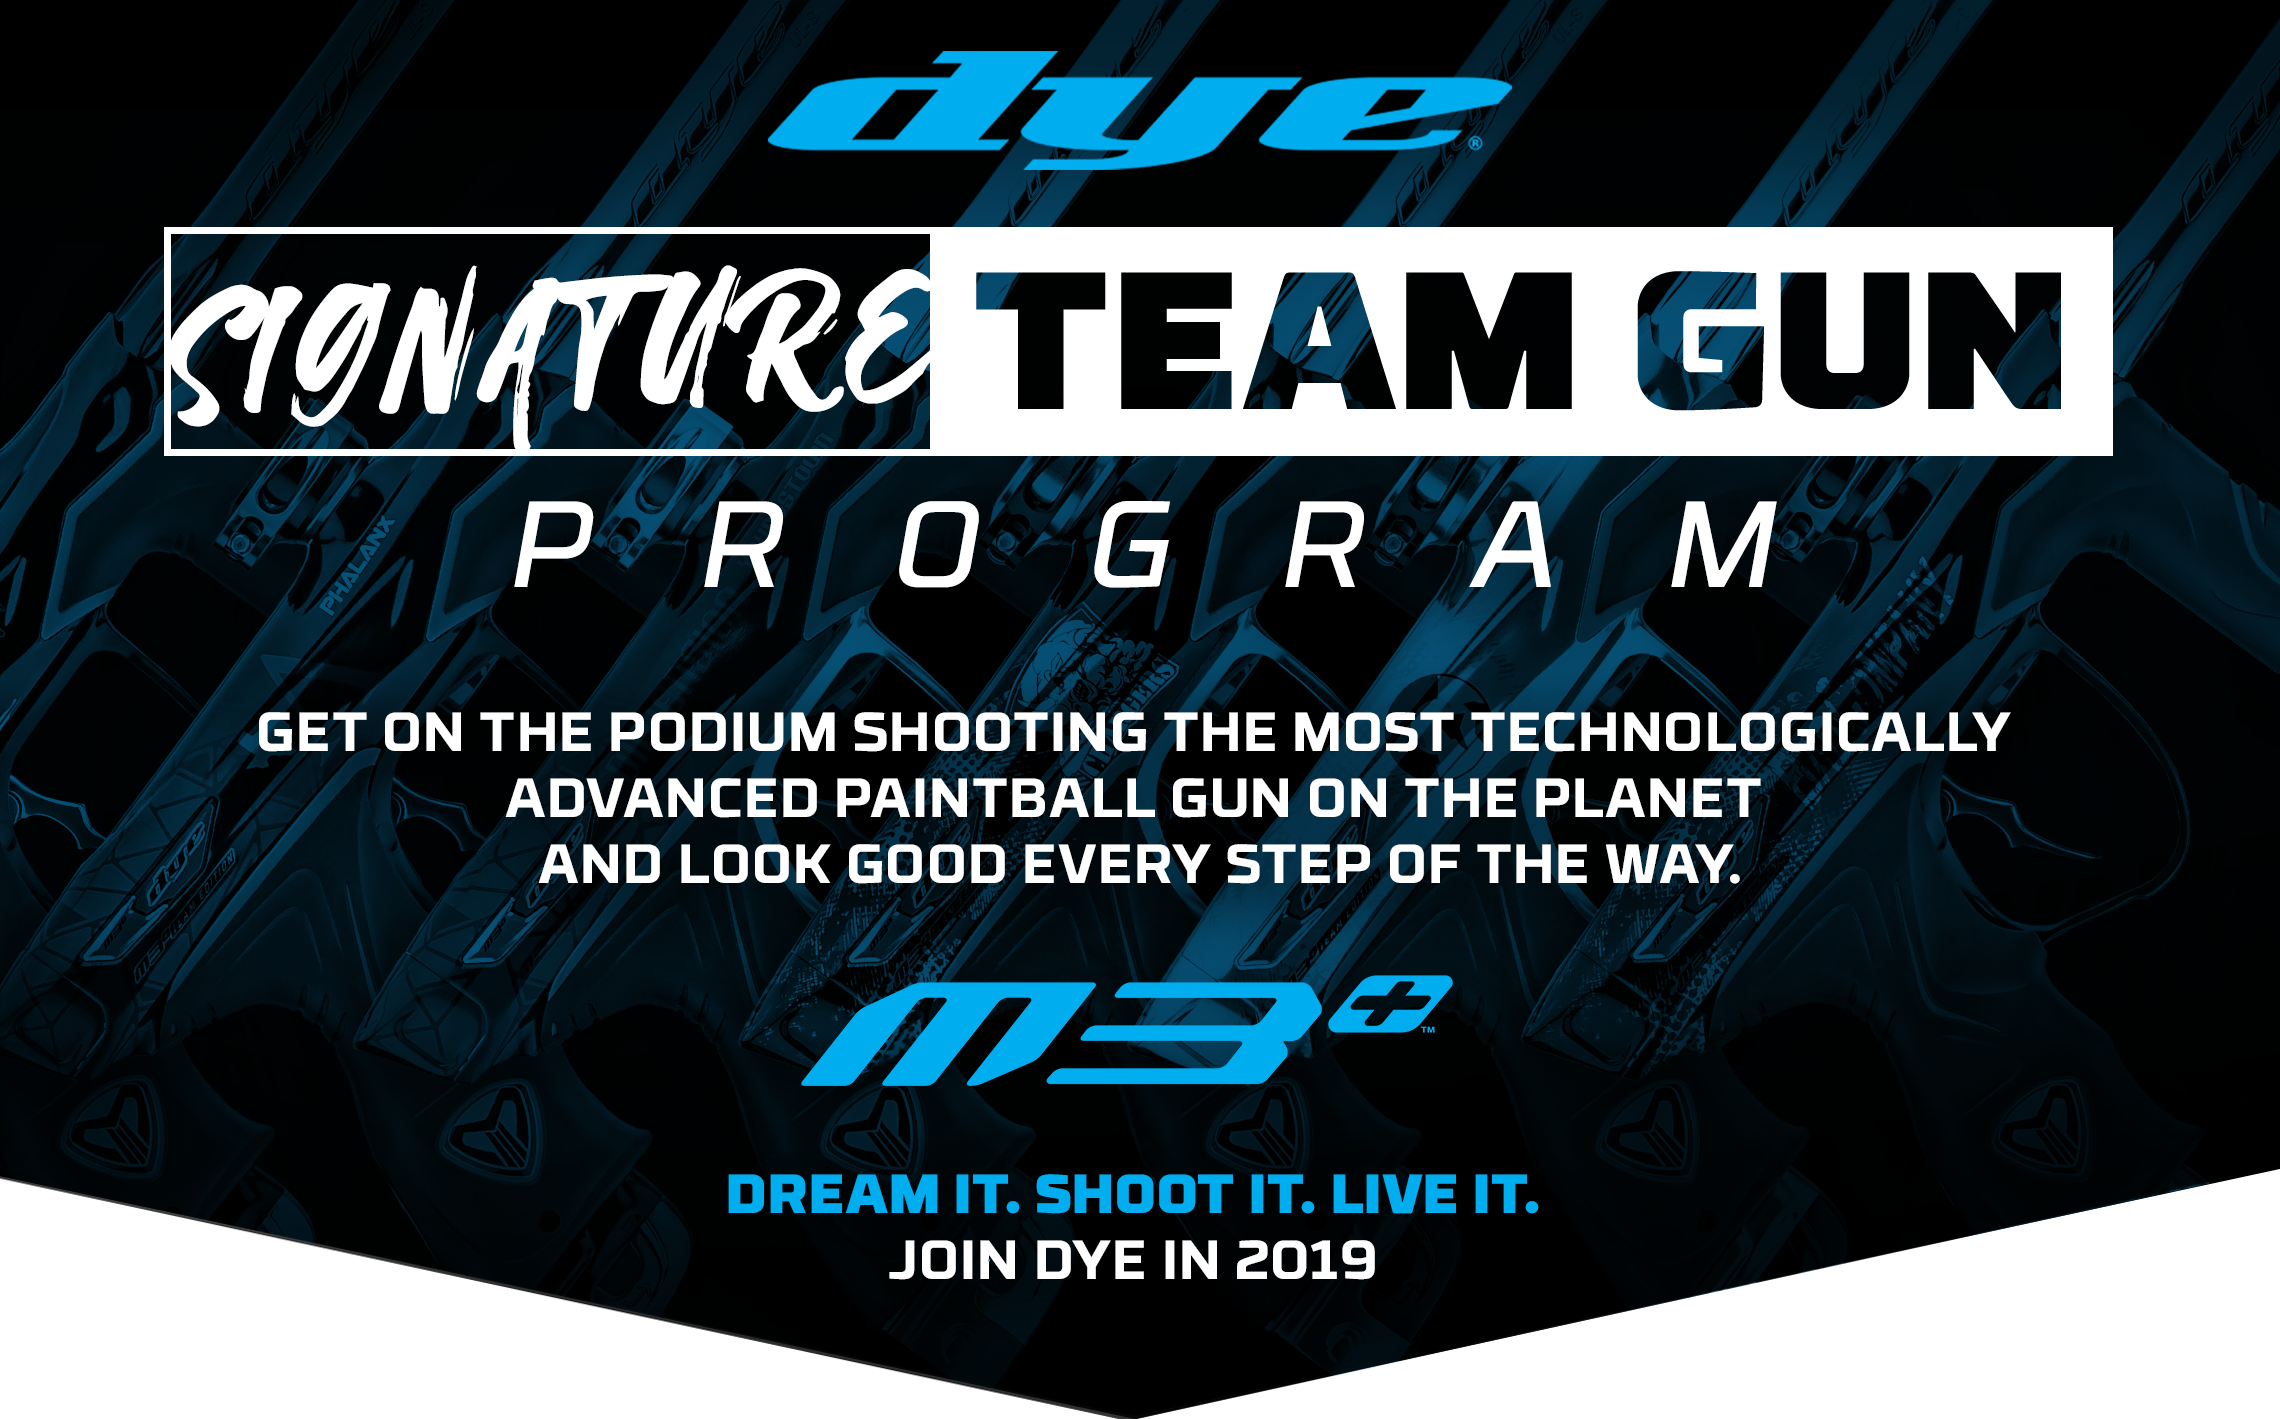 SignatureTeamGun-Program-Header